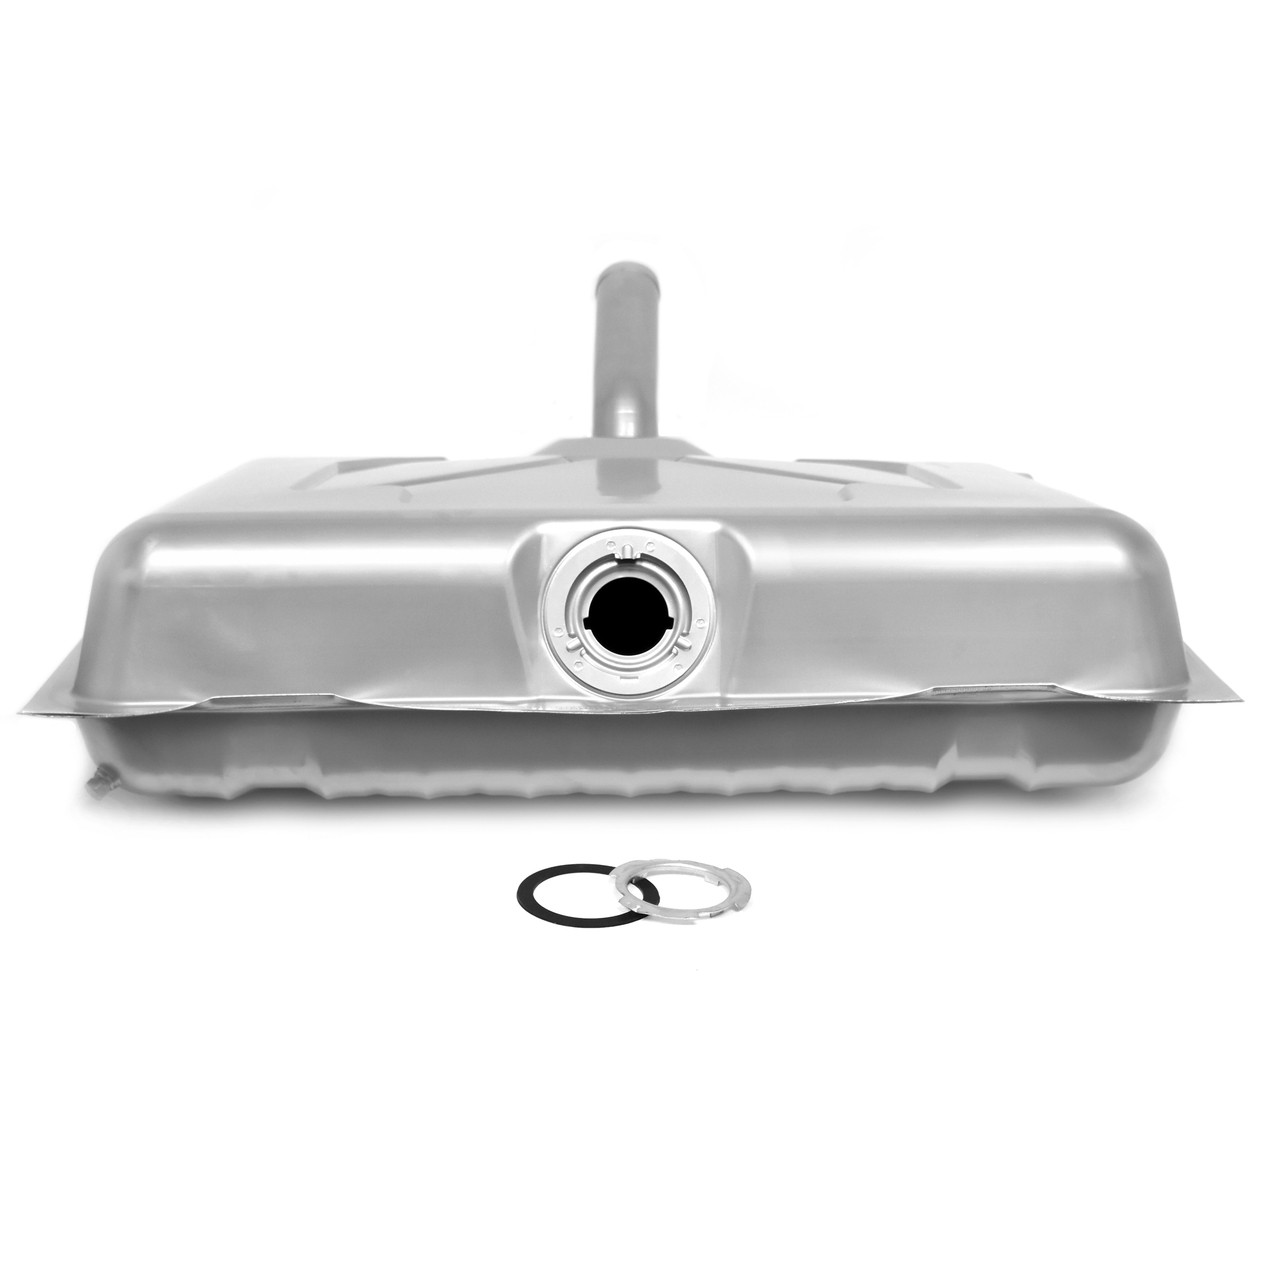 Fuel Tank With Drain 20 Gallon Except Station Wagon [FG-EG014B]